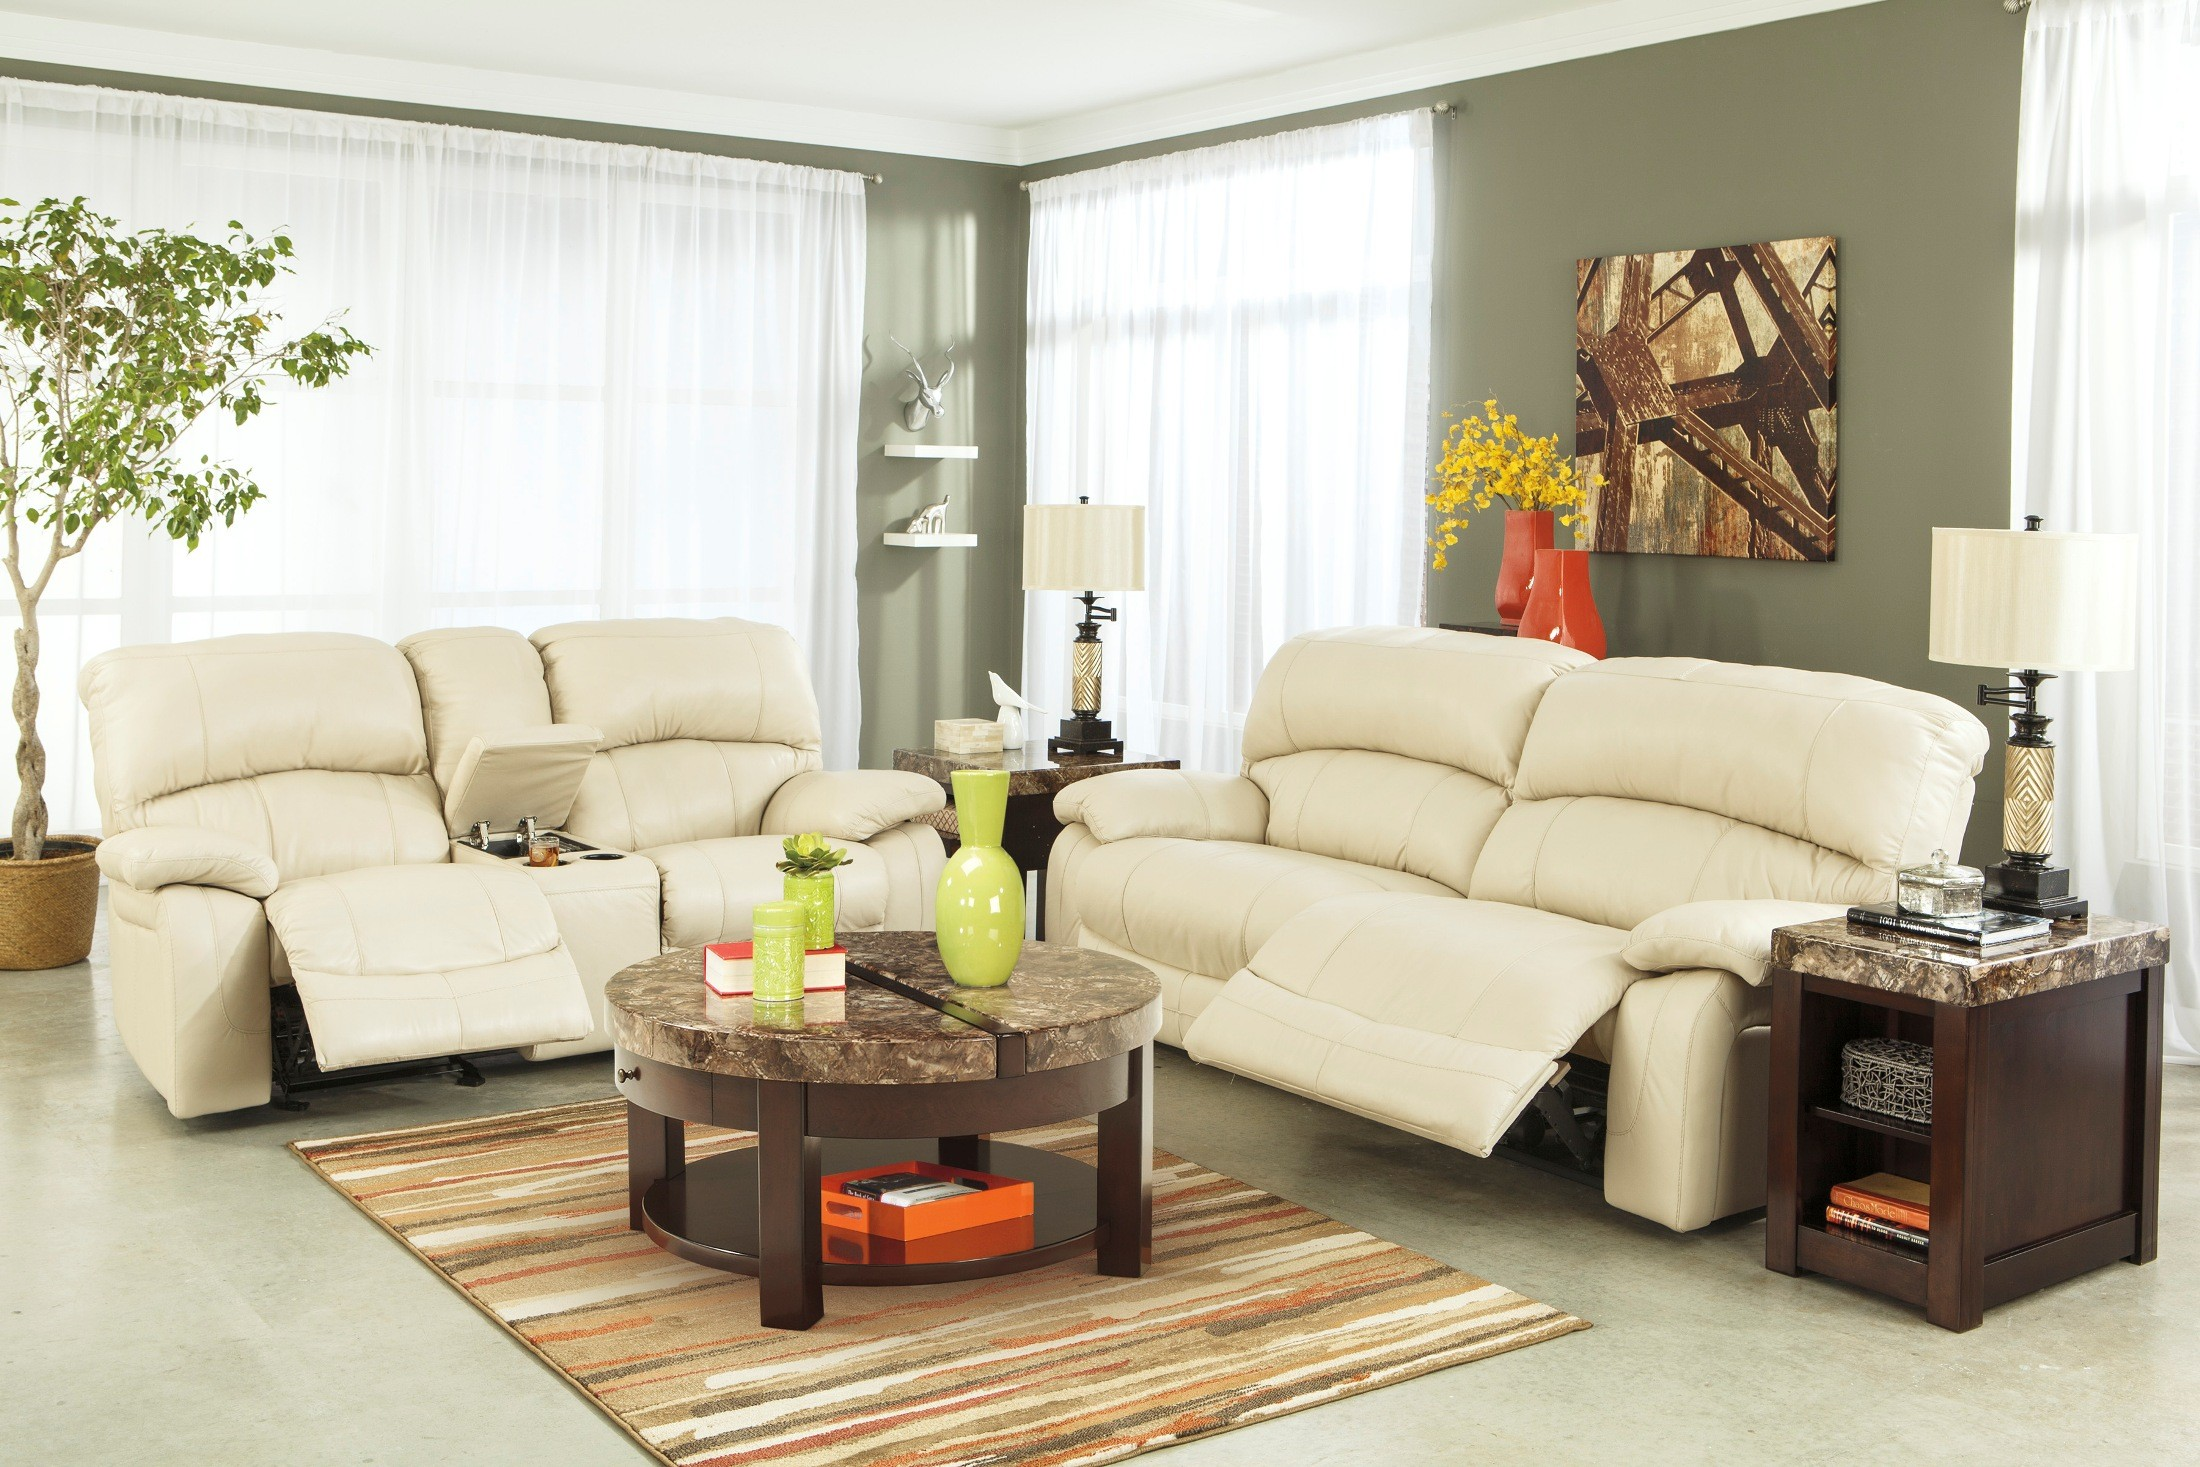 Presley Cocoa Reclining Sofa Free Signature Design By Ashley